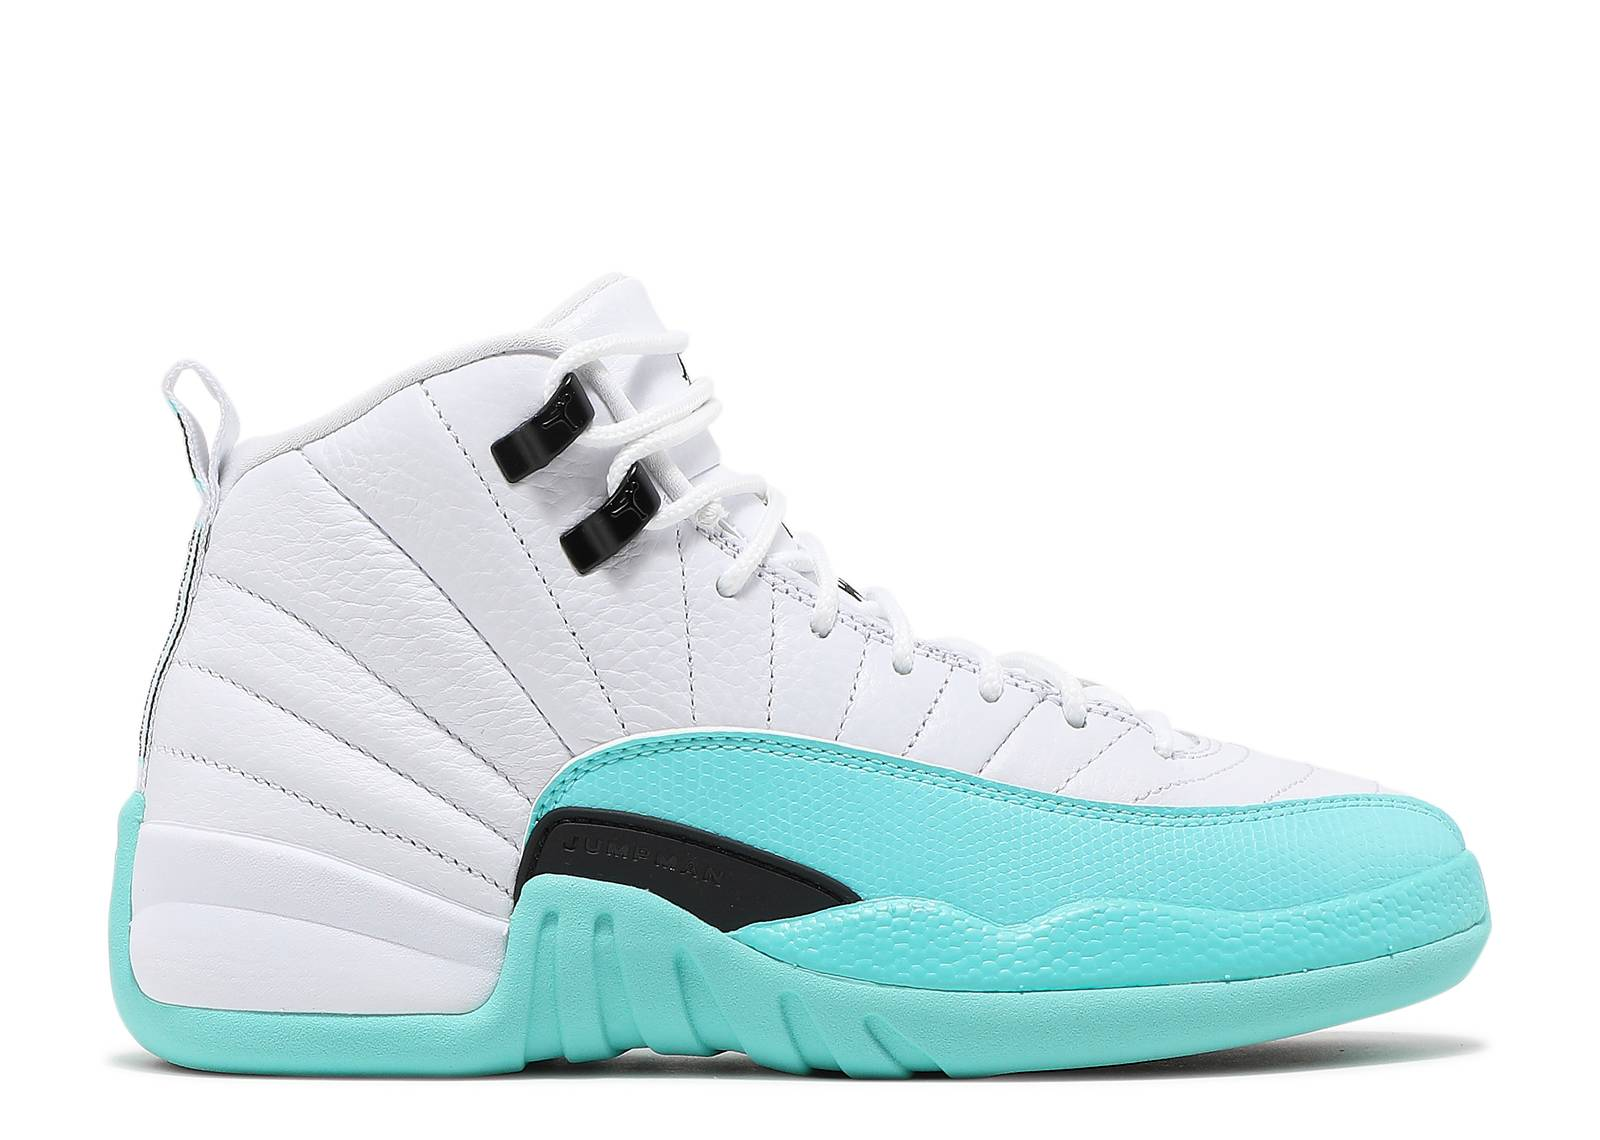 46cad60add8 AIR JORDAN 12 RETRO GG (GS)